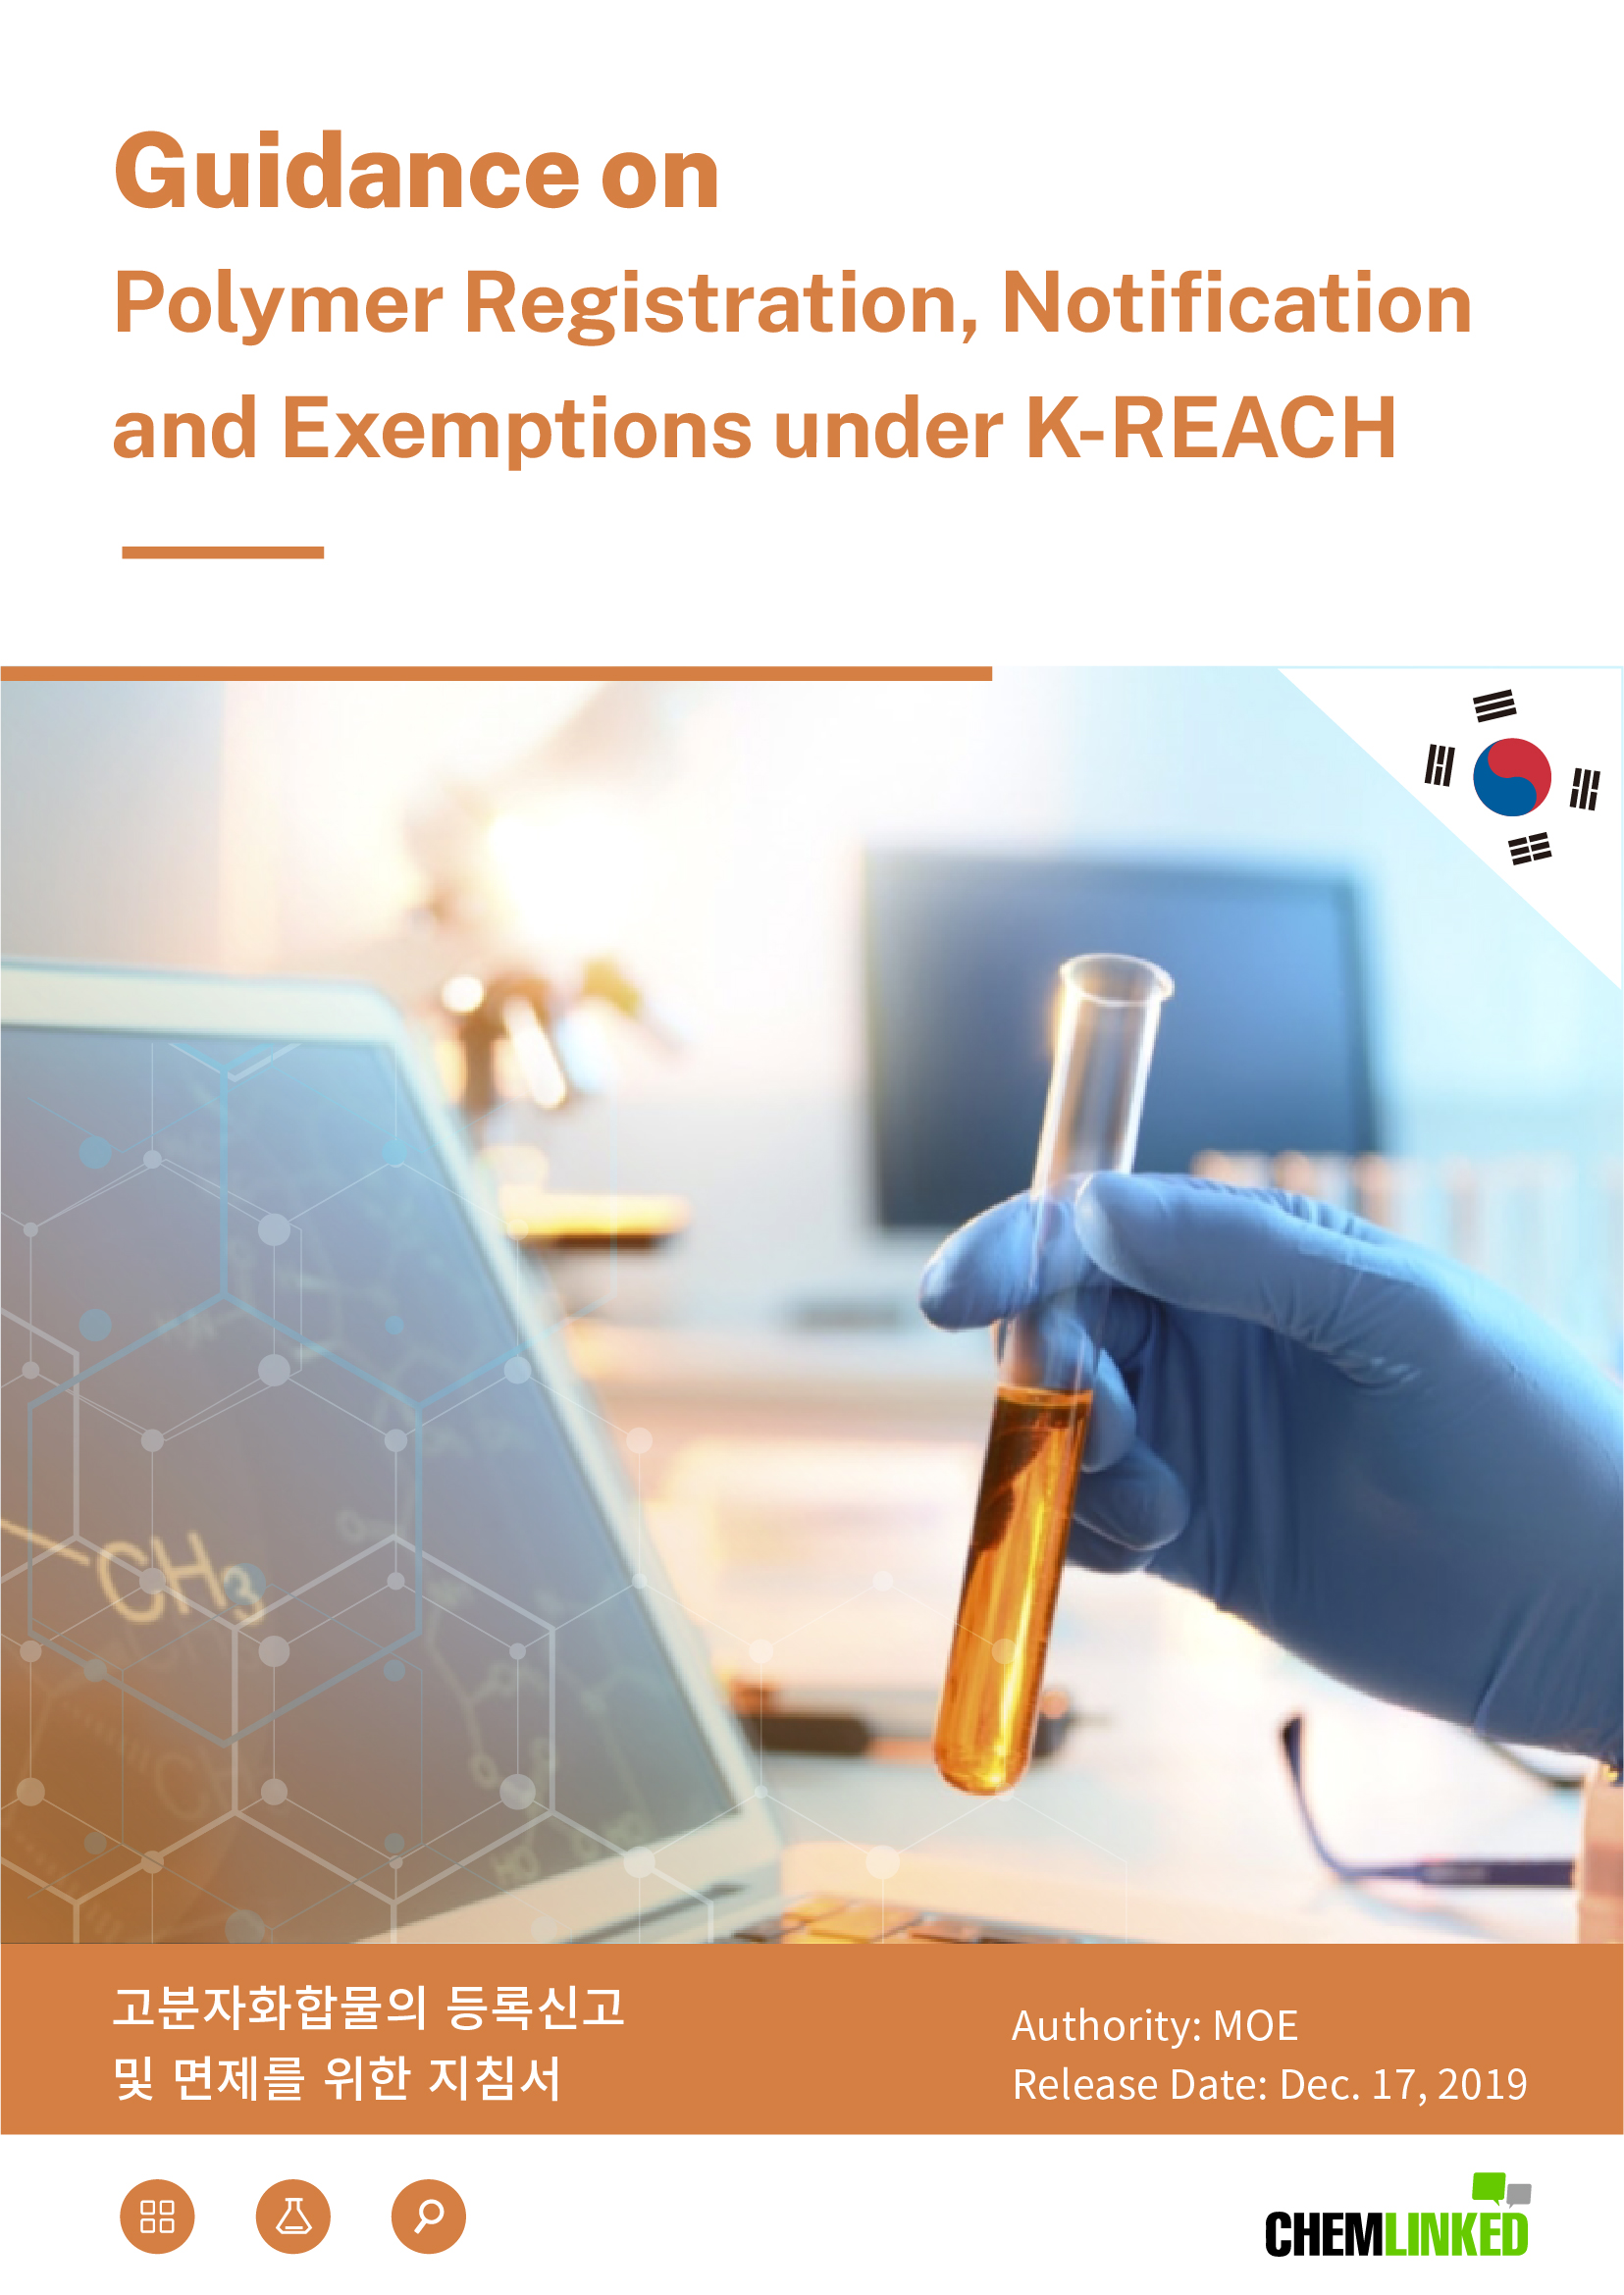 South Korea: Guidance on Polymer Registration, Declaration and Exemptions